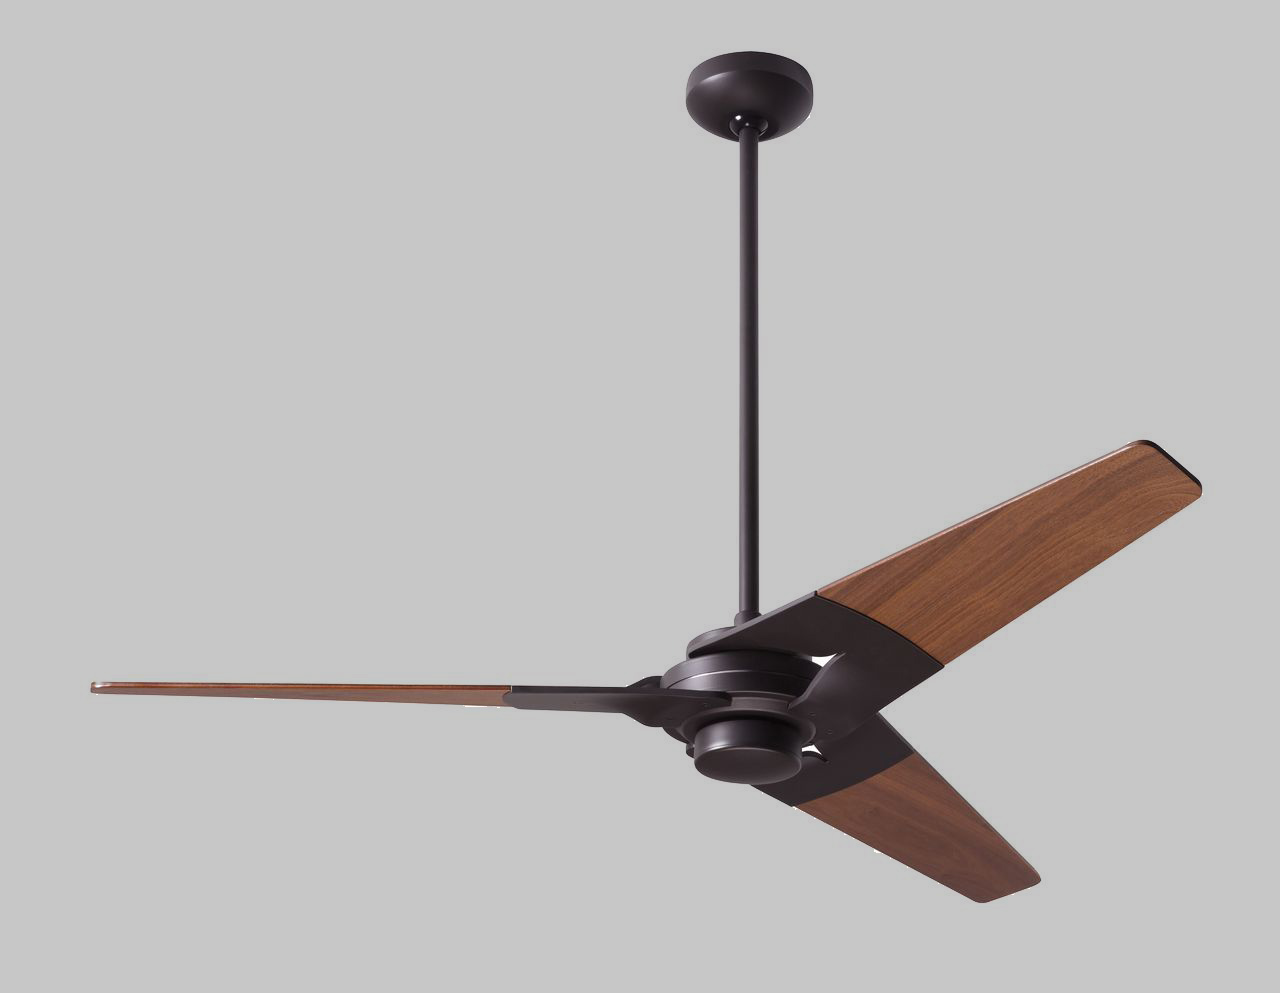 Buy dark torsion design ceiling fans modern fan eu aloadofball Image collections